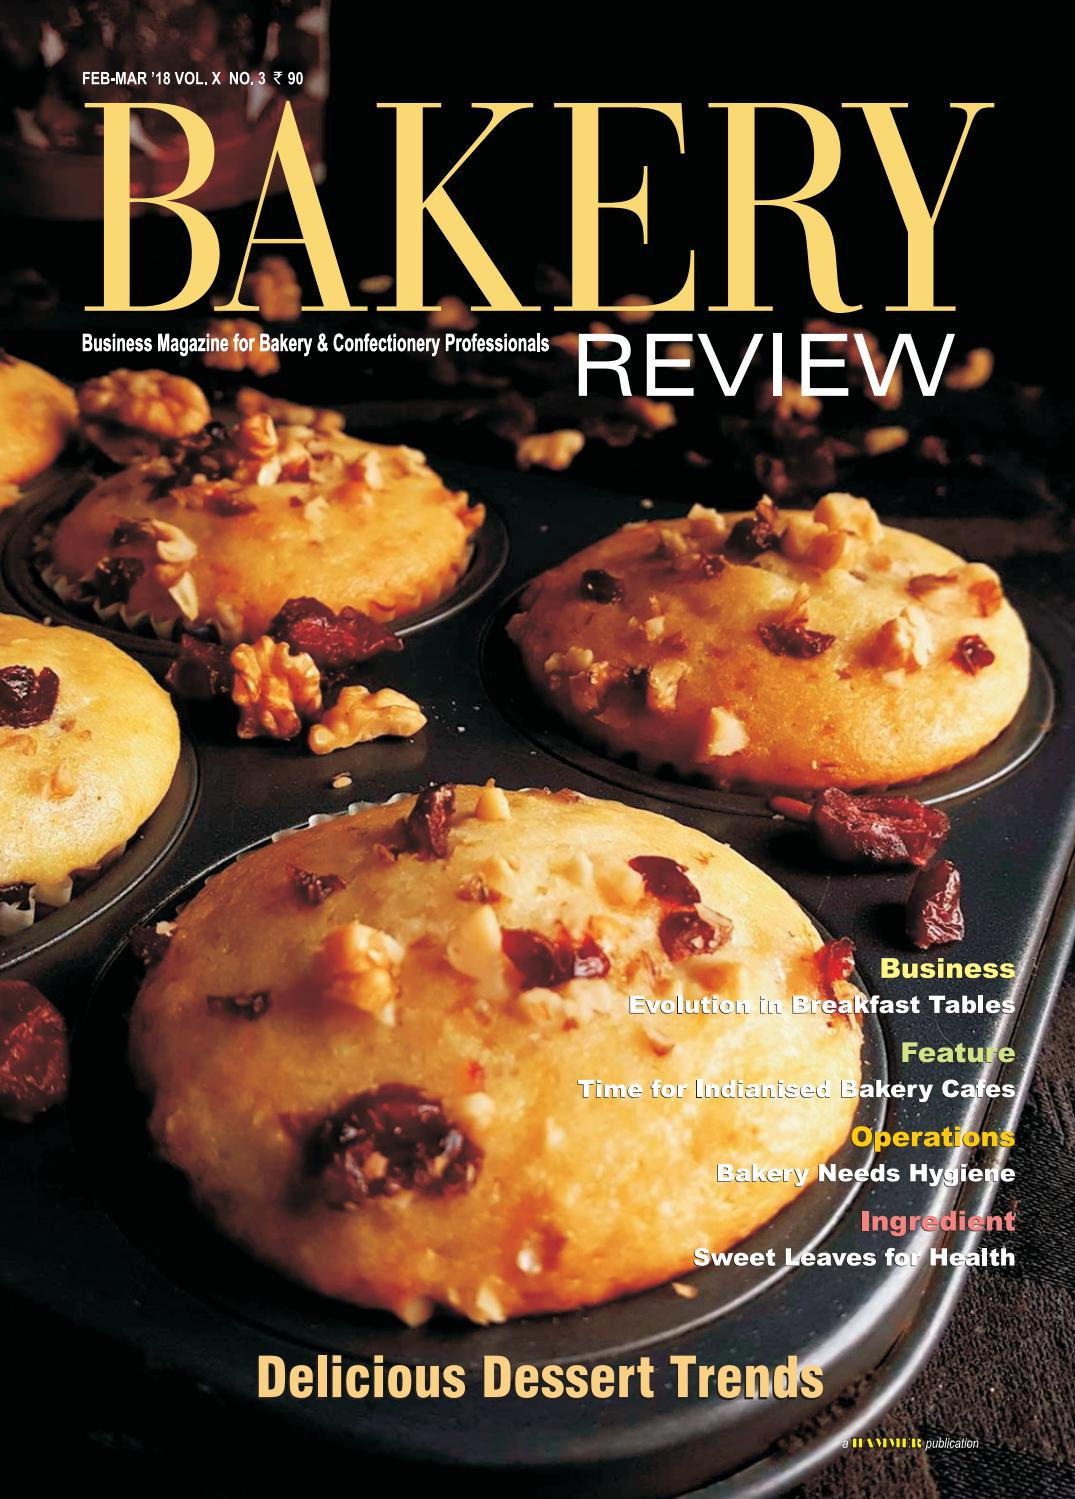 Bakery Review (Feb-March 2018) by Bakery Review - issuu